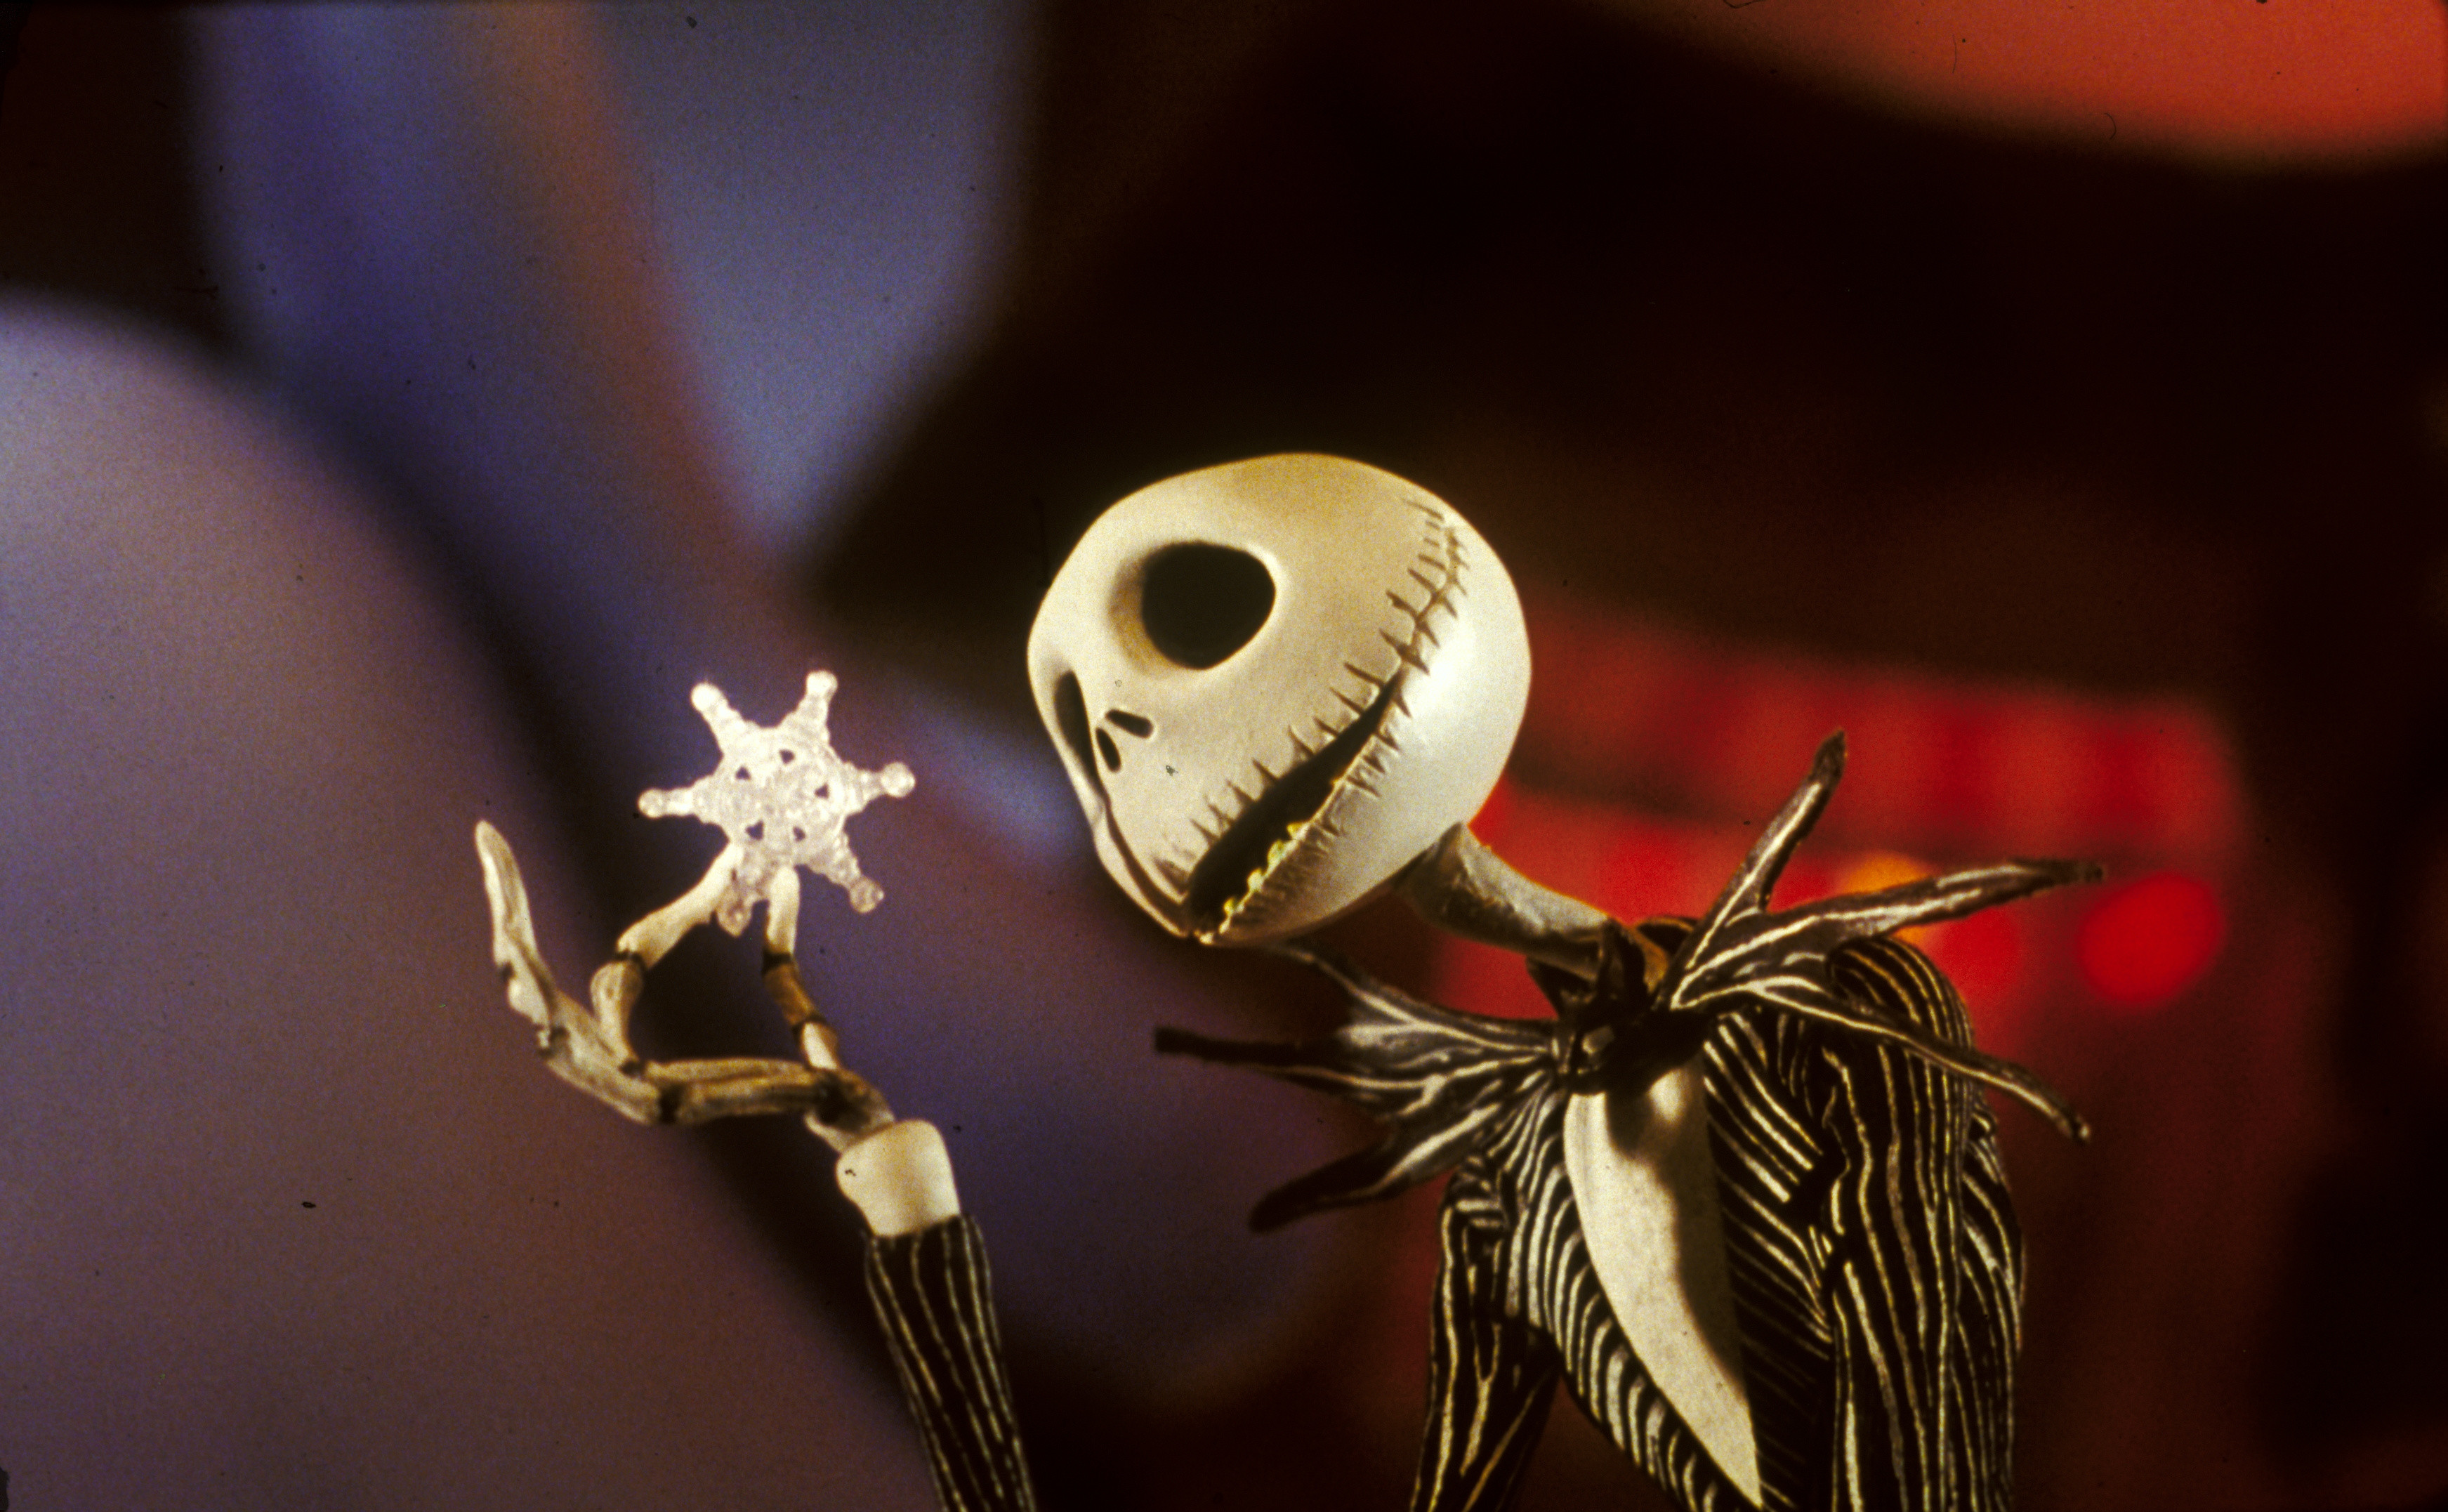 3486x2153 3d jack skellington nightmare before christmas wallpaper ultra hd desktop  wallpapers high definition amazing cool free best windows apple 3486×2153  ...